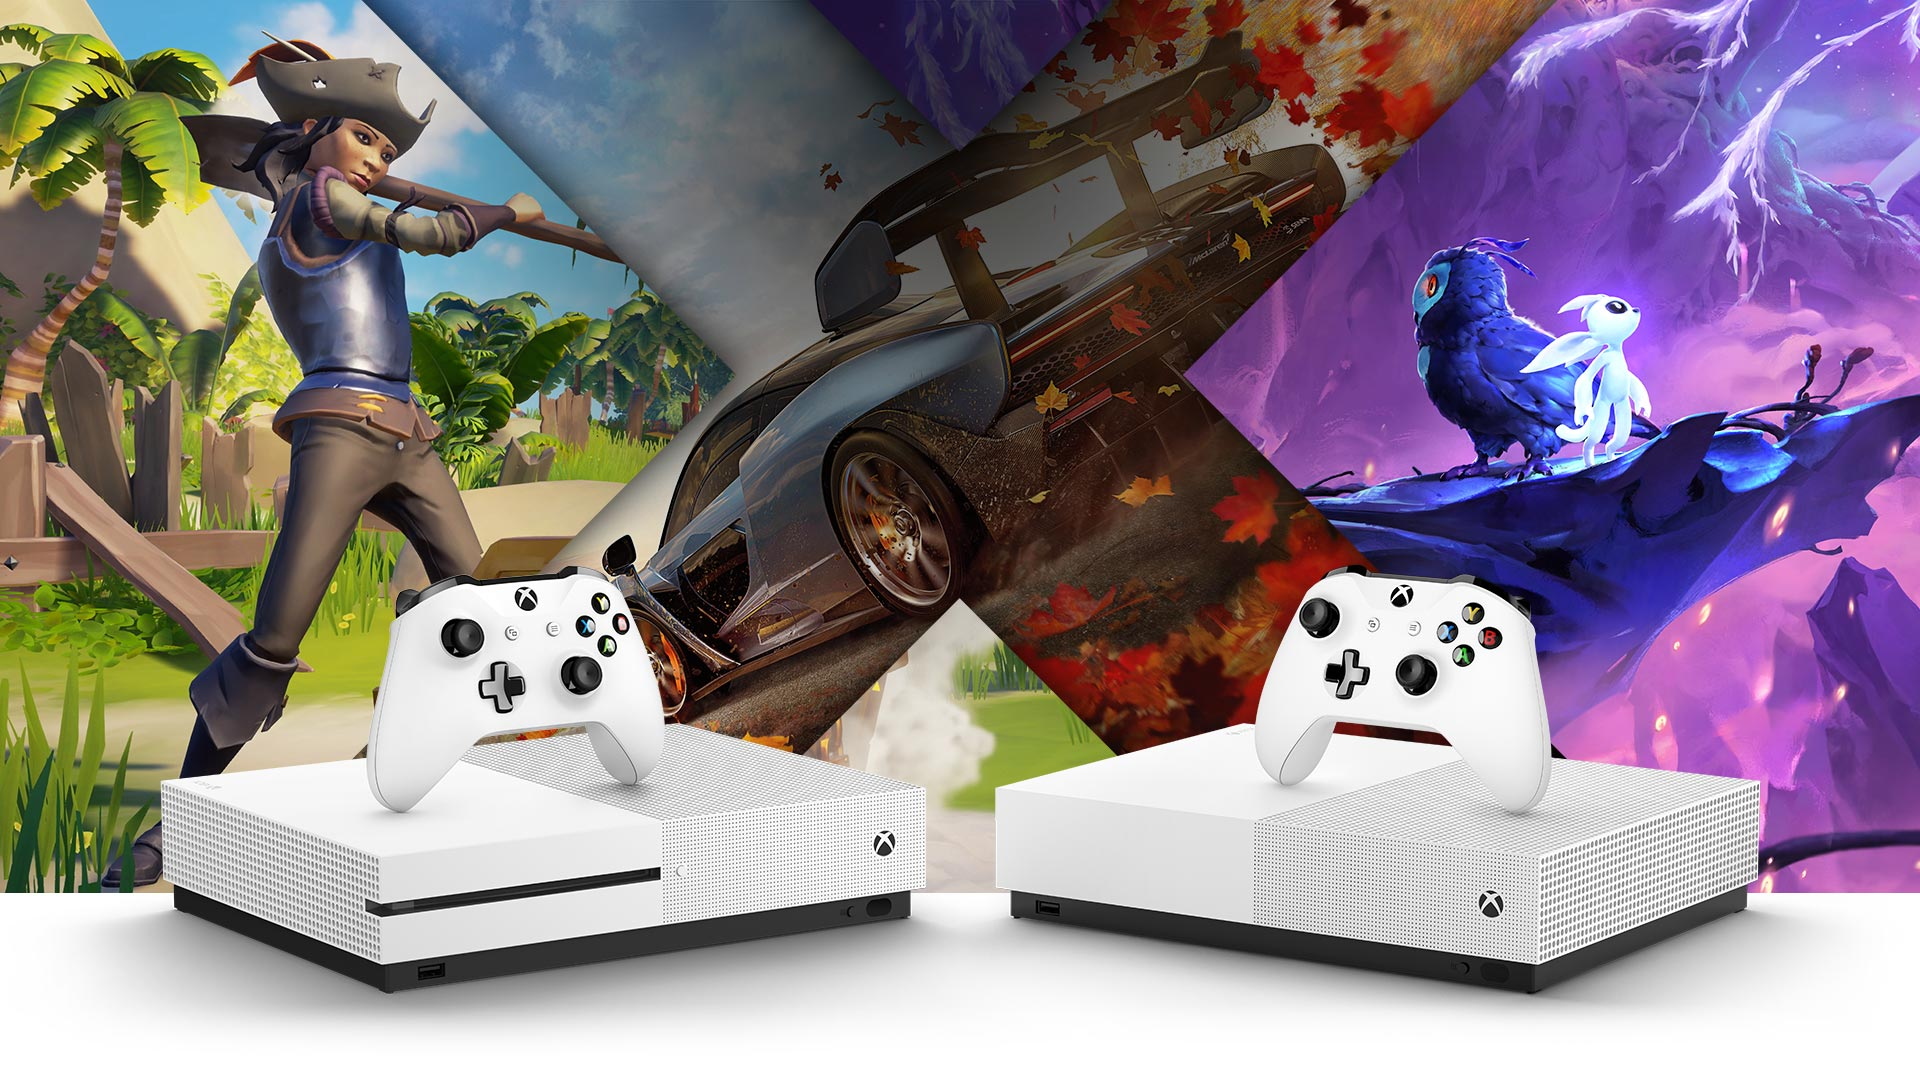 Pohled zepředu na Xbox One S a Xbox One S All Digital Edition, kolem obrázky z her Sea of Thieves, Forza Horizon 4, Ori and the Will of Wisps